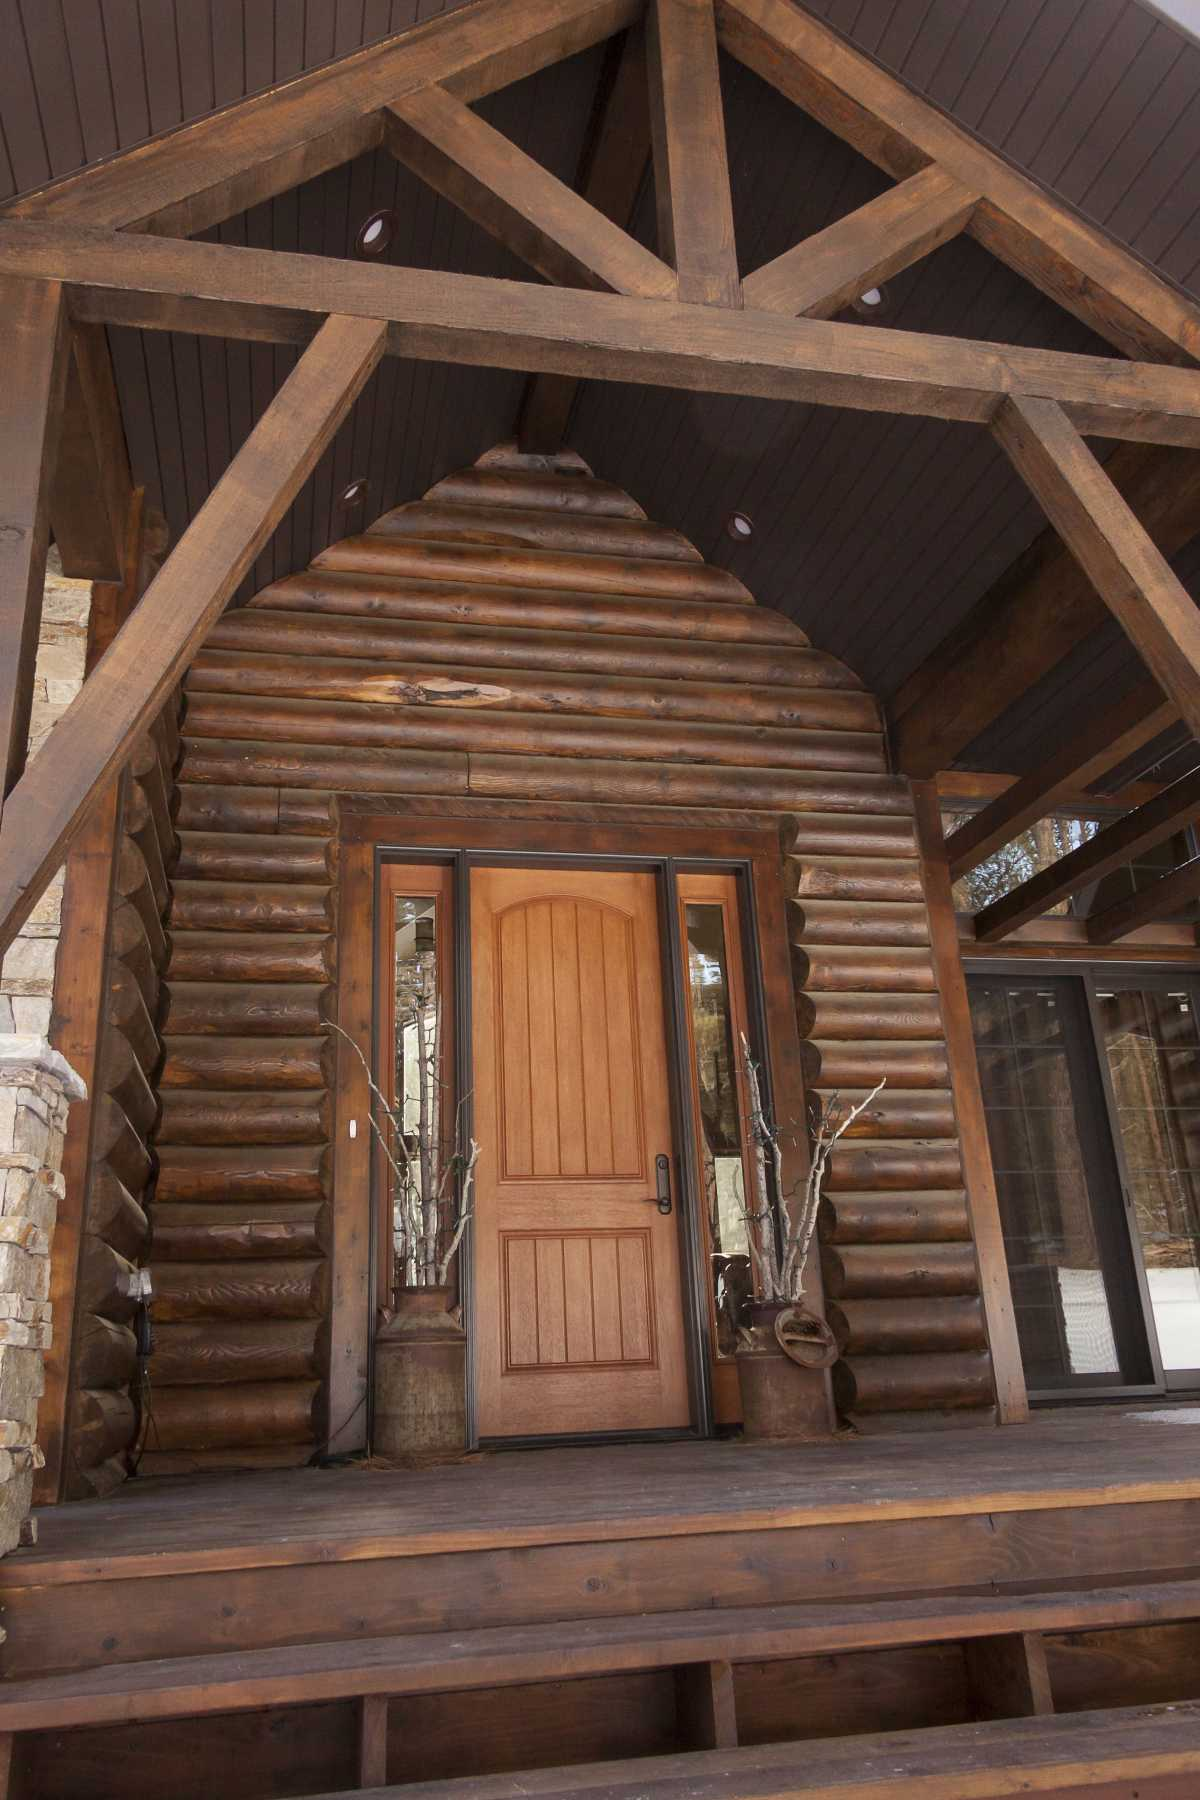 The rustic entry door and its coordinating decor.